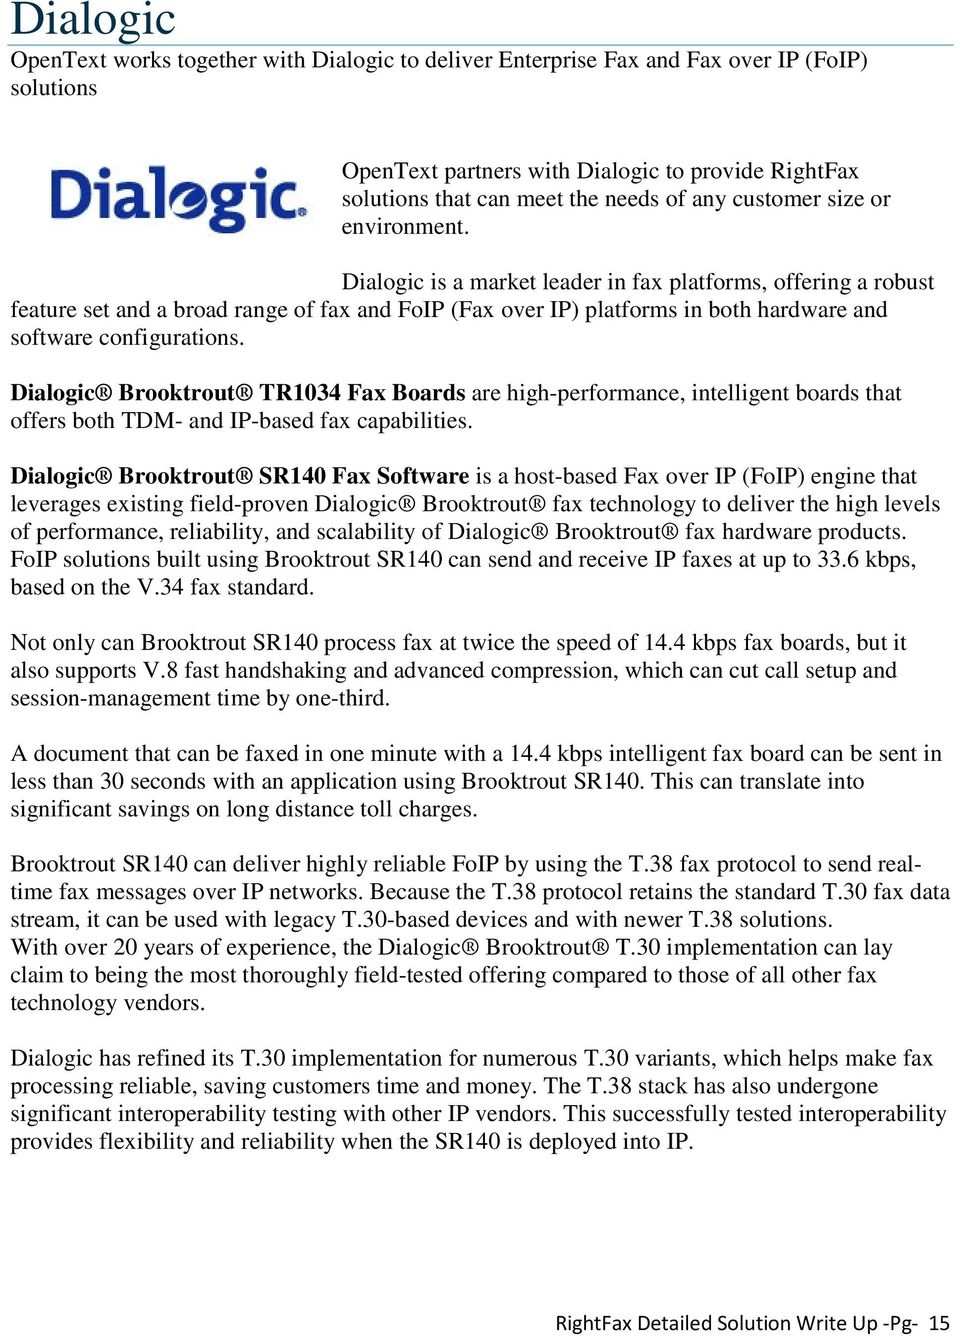 Dialogic is a market leader in fax platforms, offering a robust feature set and a broad range of fax and FoIP (Fax over IP) platforms in both hardware and software configurations.